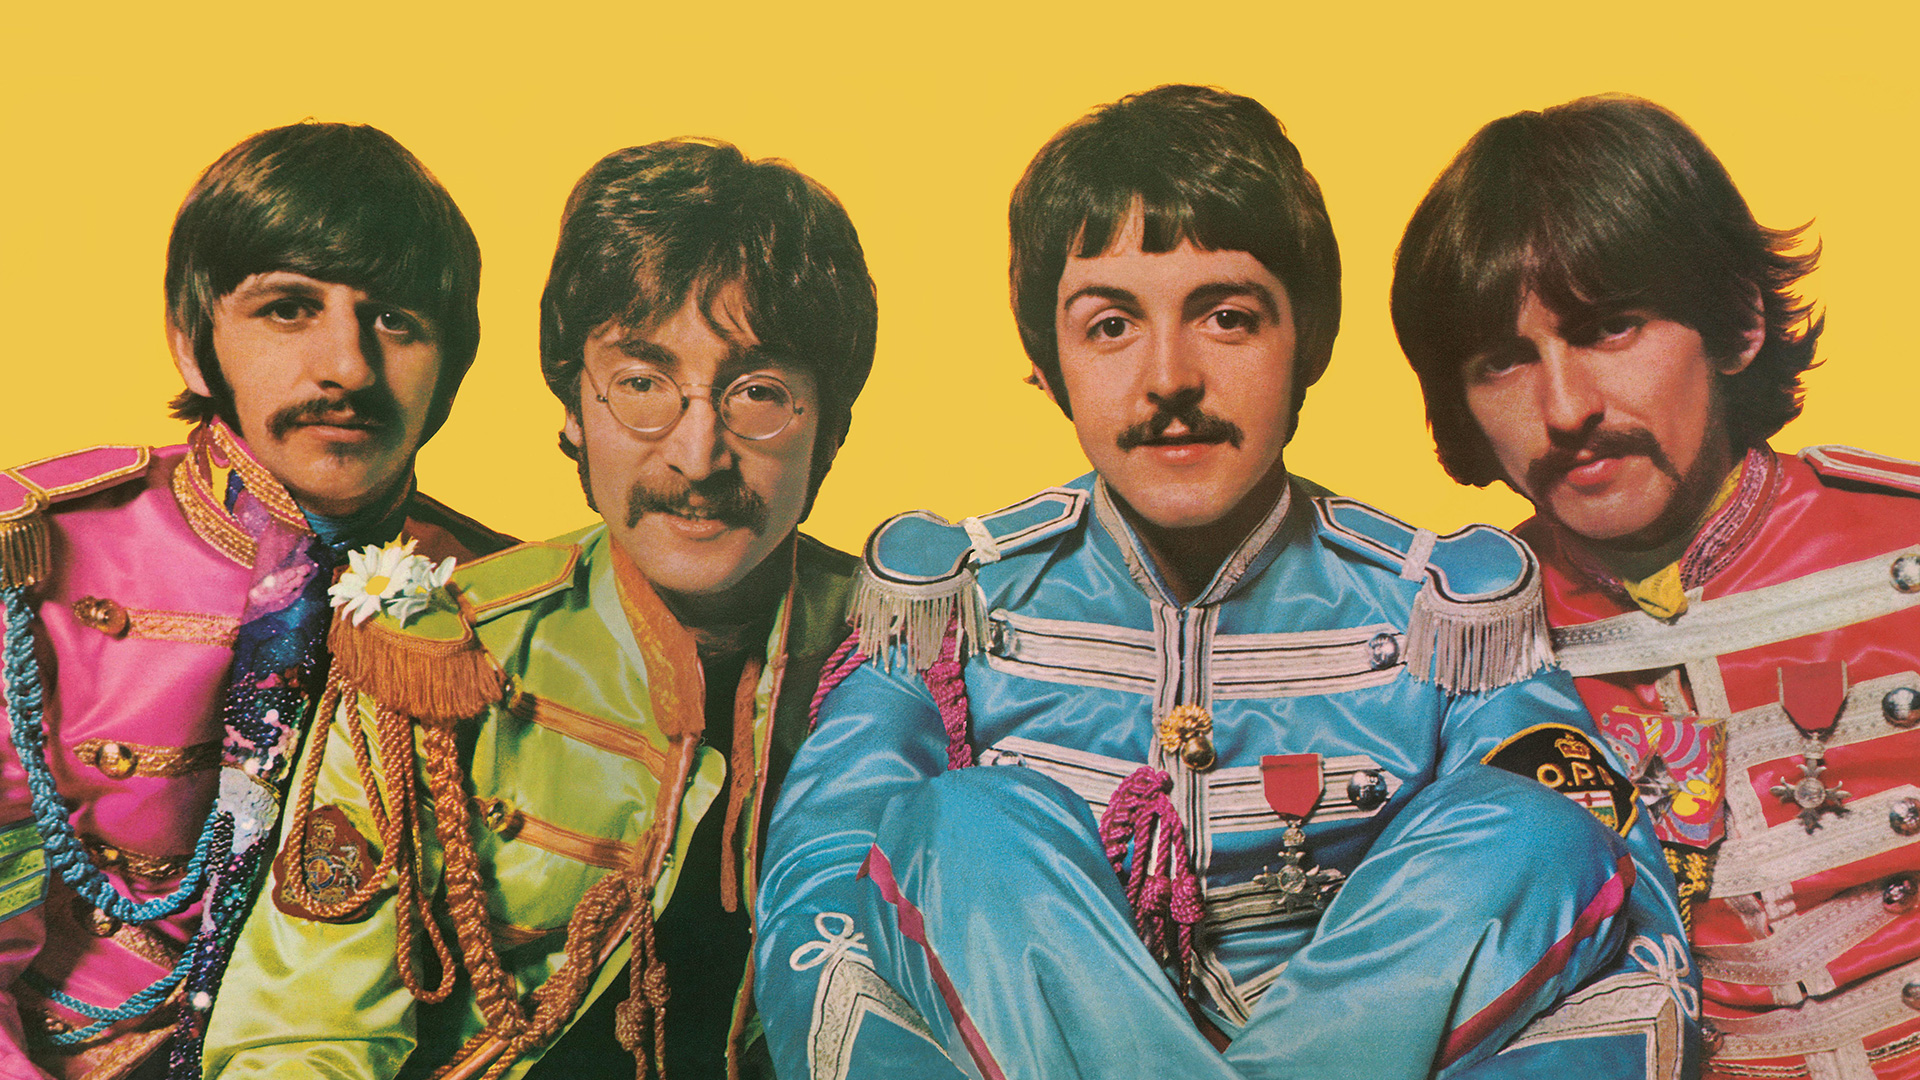 sgt_peppers_beatles_uniform_hero